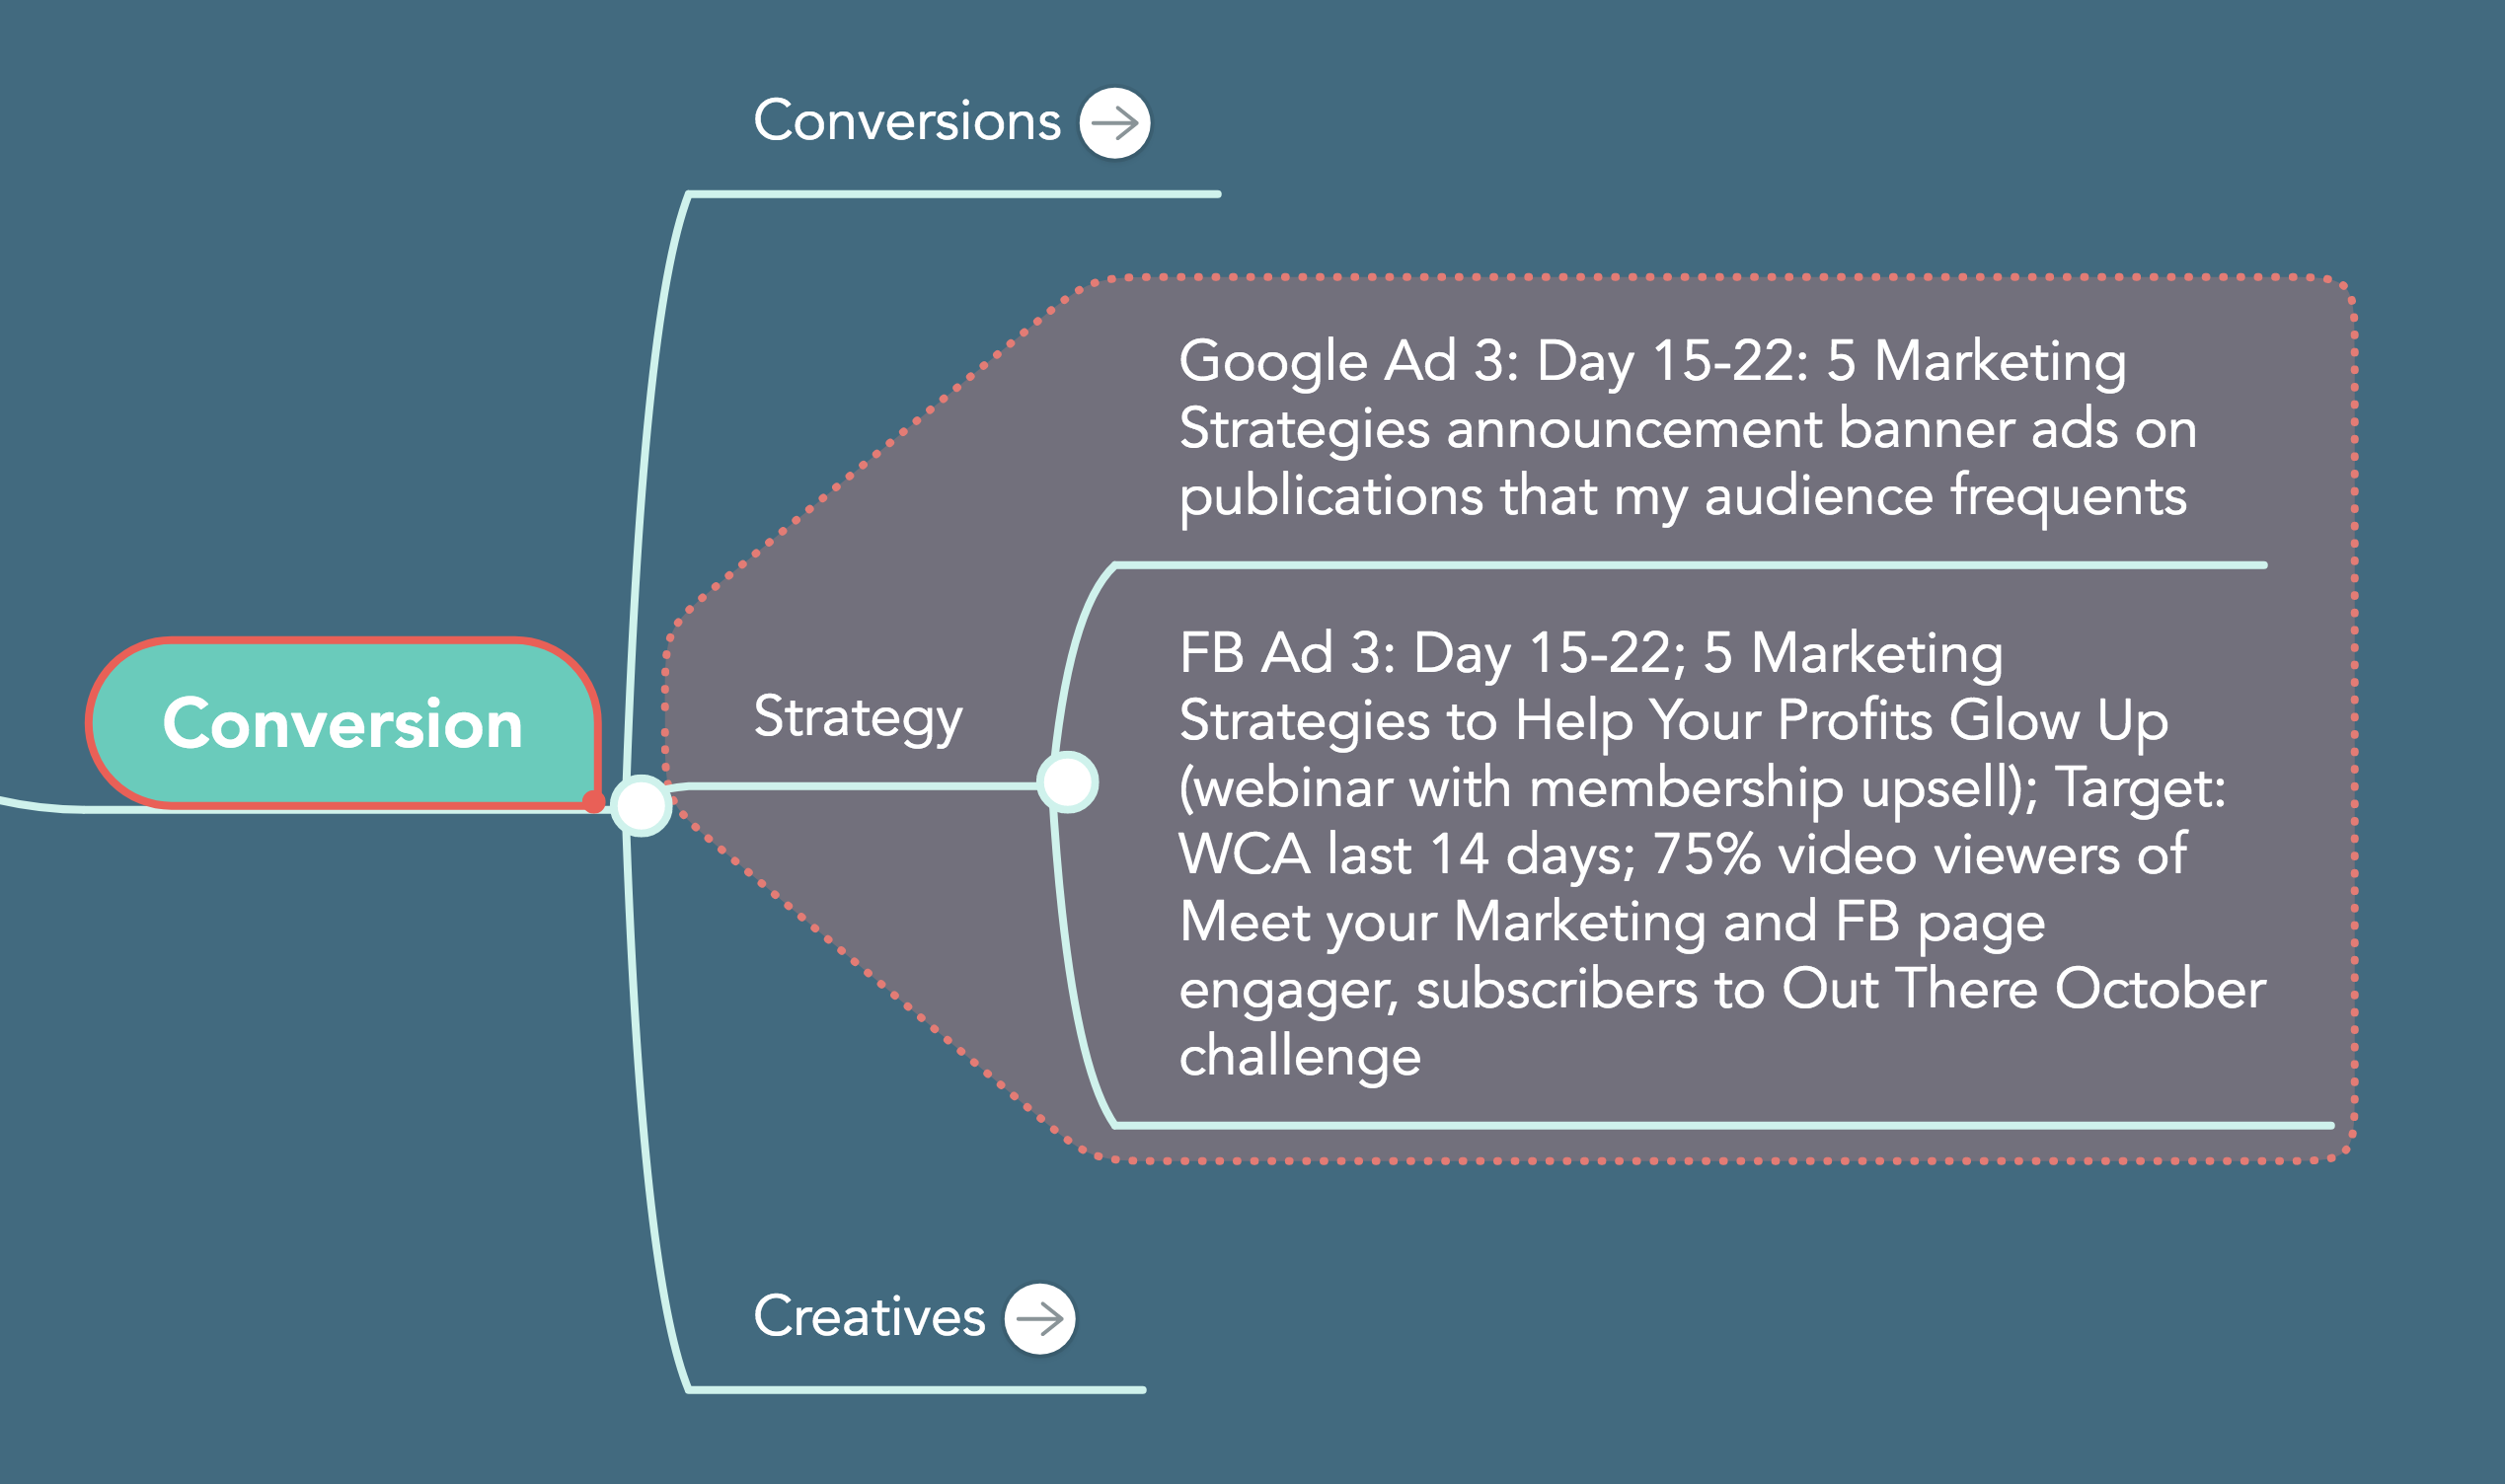 strategy conversion customer life cycle MindMeister sales funnel facebook advertising google advertising